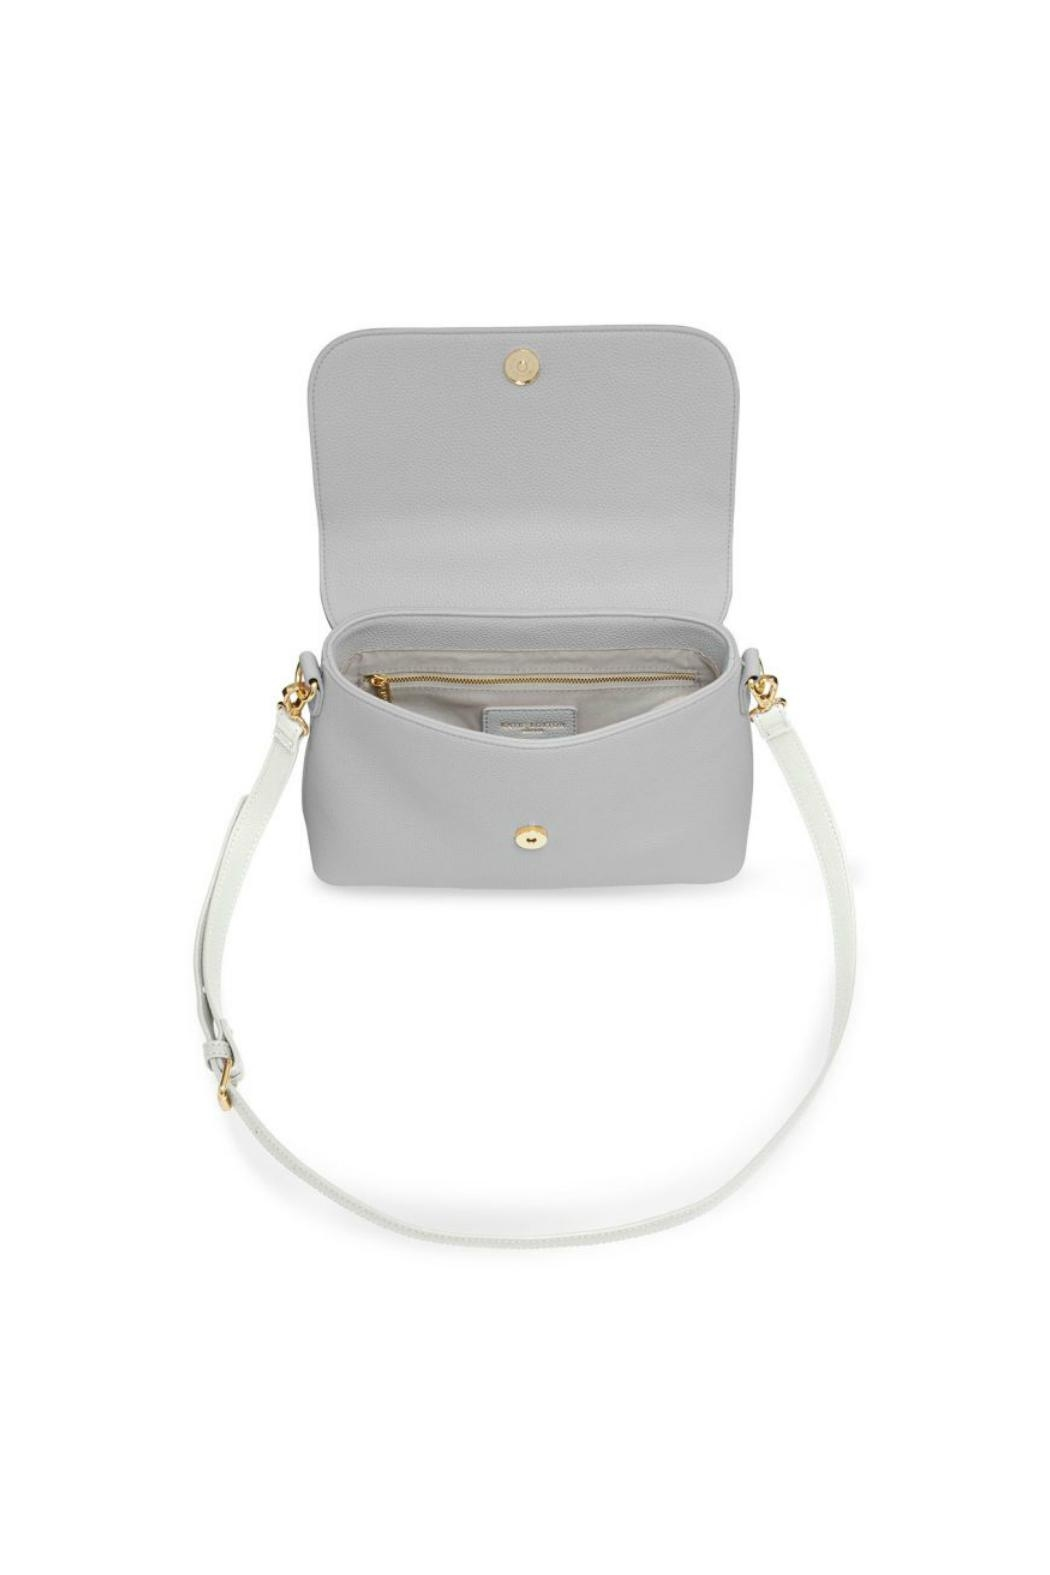 Katie Loxton Two-Tone Messenger Bag - Front Full Image